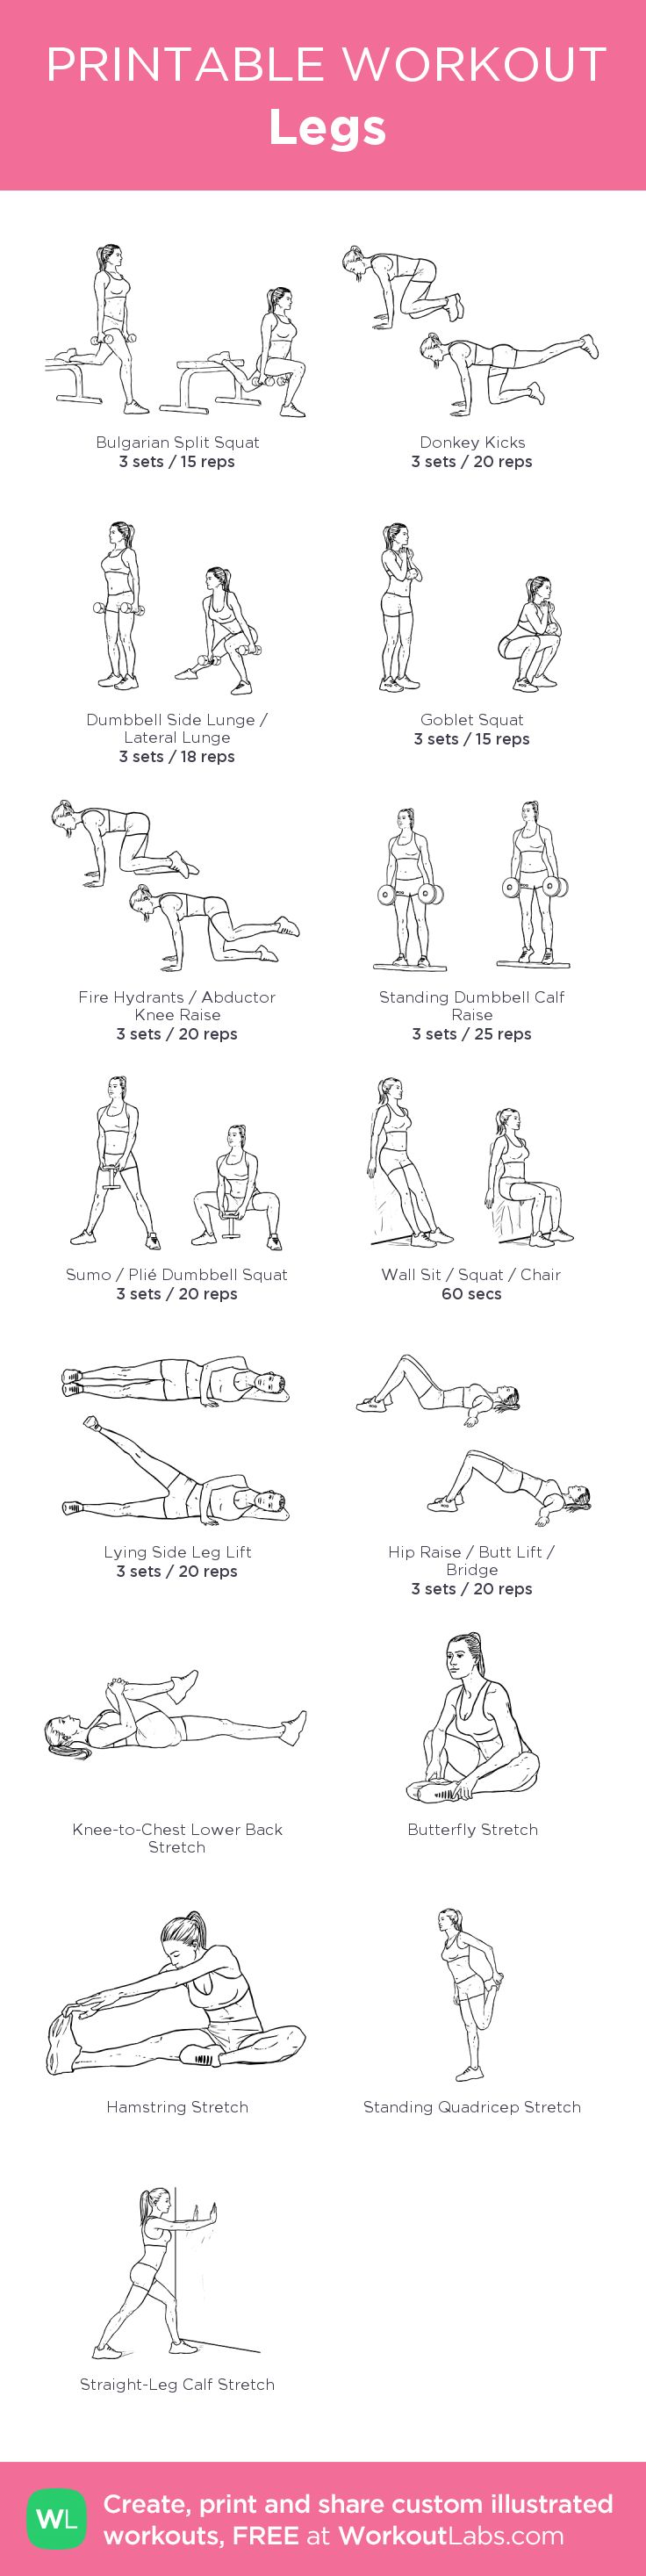 Legs –my custom workout created at WorkoutLabs.com • Click through to download as printable PDF! #customworkout